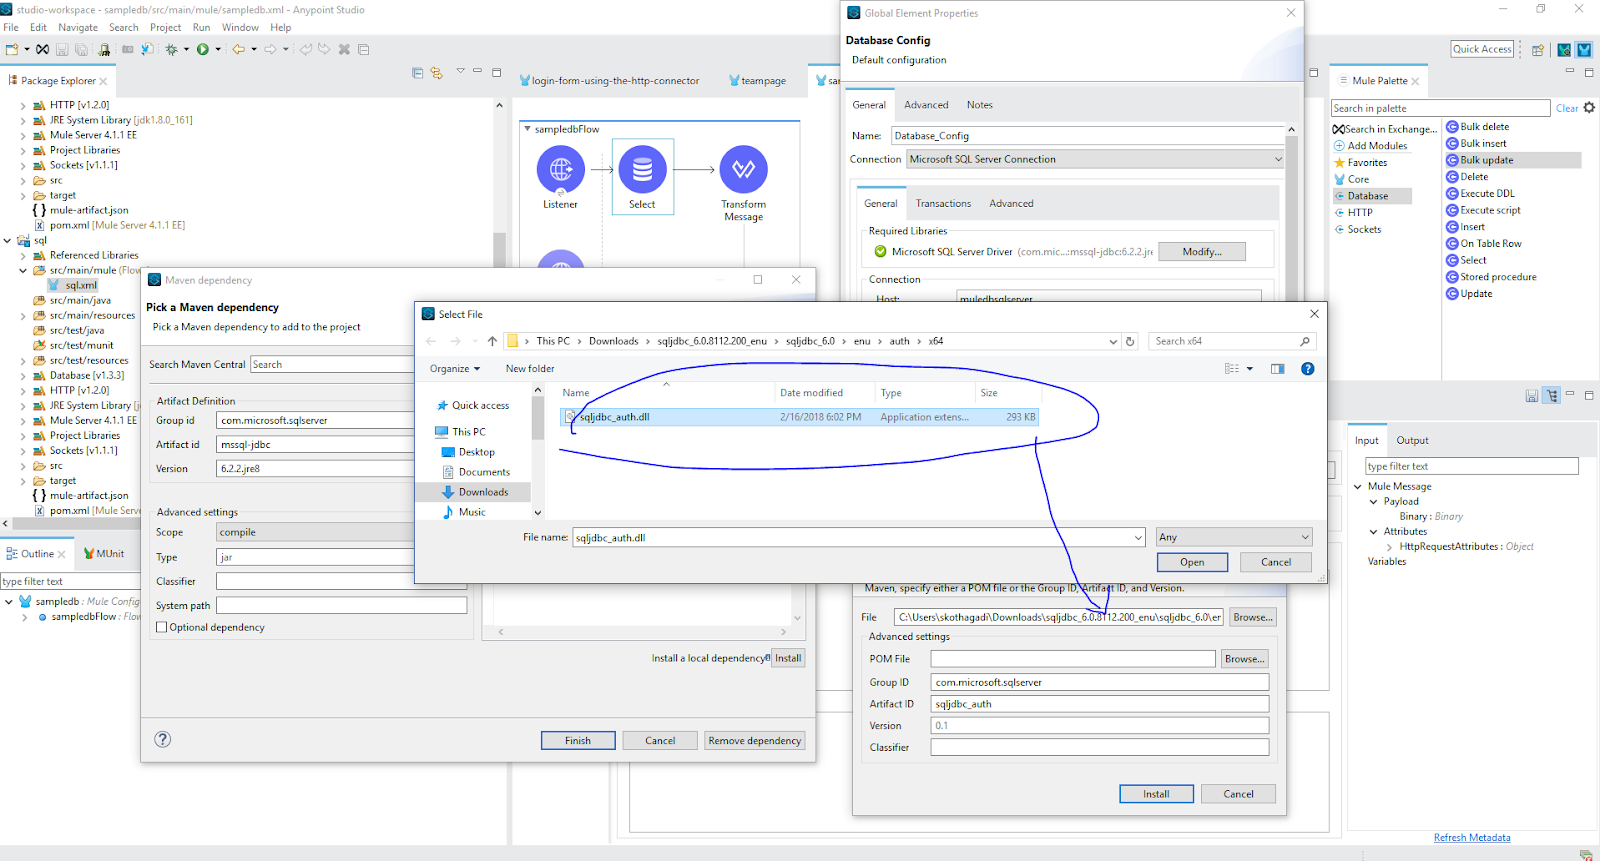 Training 2- How to connect to SQL Server using DB connector in Mule